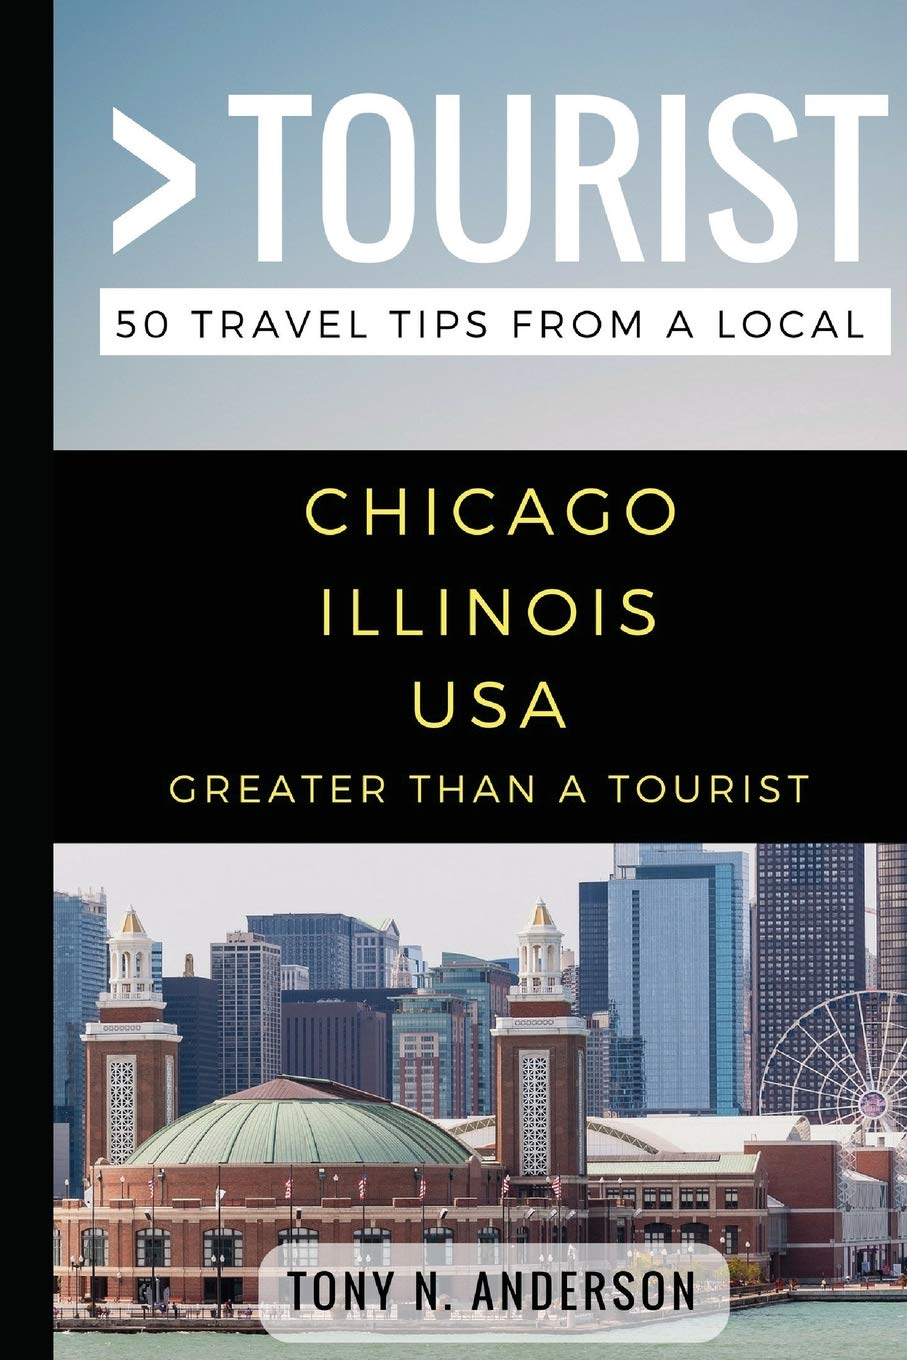 Download Greater Than a Tourist- Chicago Illinois USA: 50 Travel Tips from a Local pdf